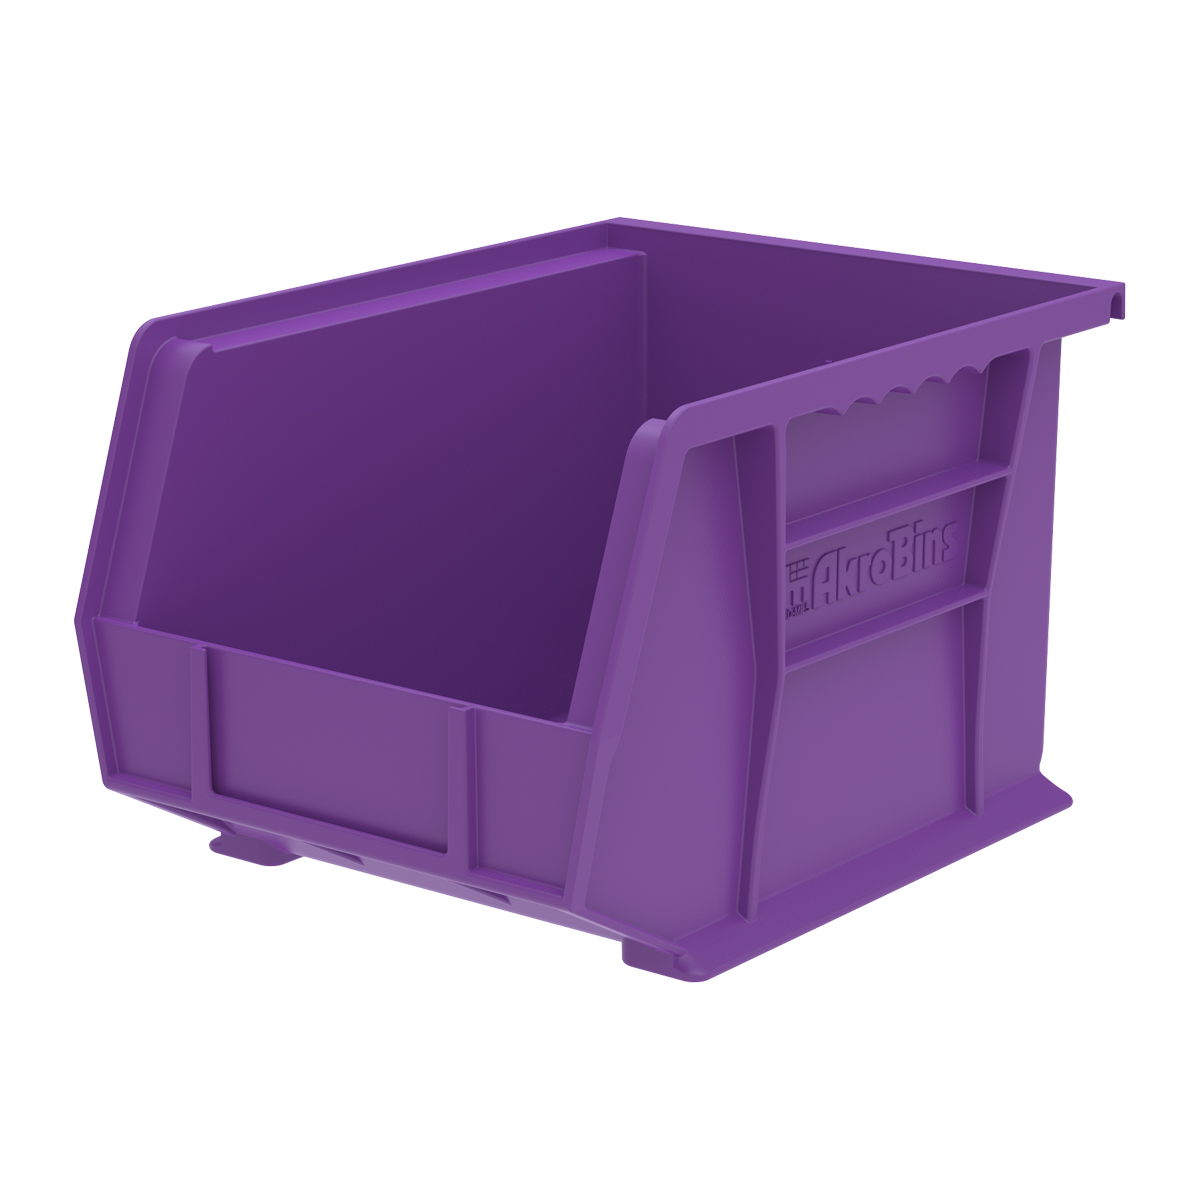 AkroBin 10-3/4 x 8-1/4 x 7, Purple (30239PURPL).  This item sold in carton quantities of 6.